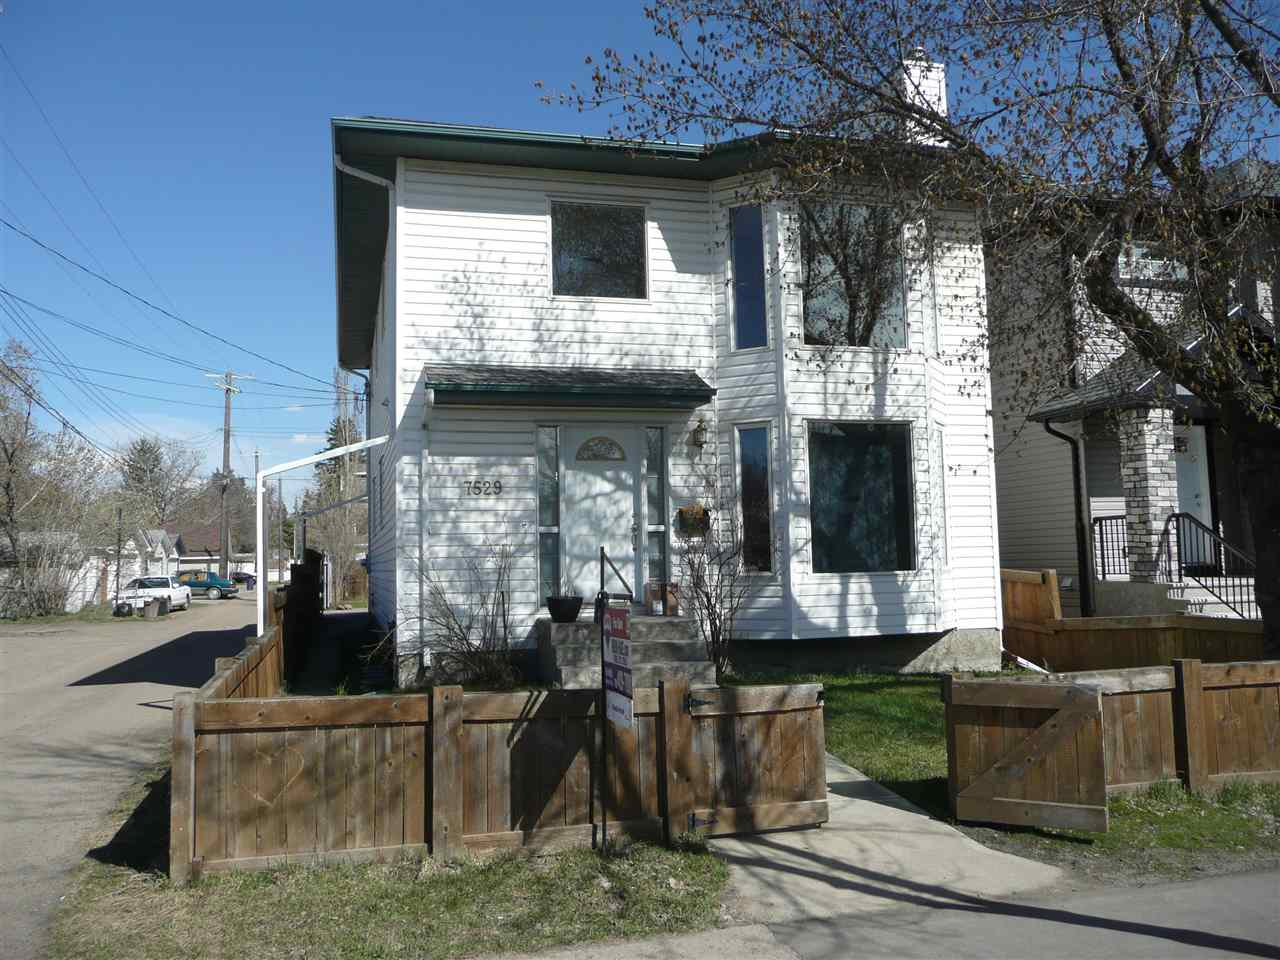 Main Photo: 7529 106 Street NW in Edmonton: Zone 15 House for sale : MLS(r) # E4062214